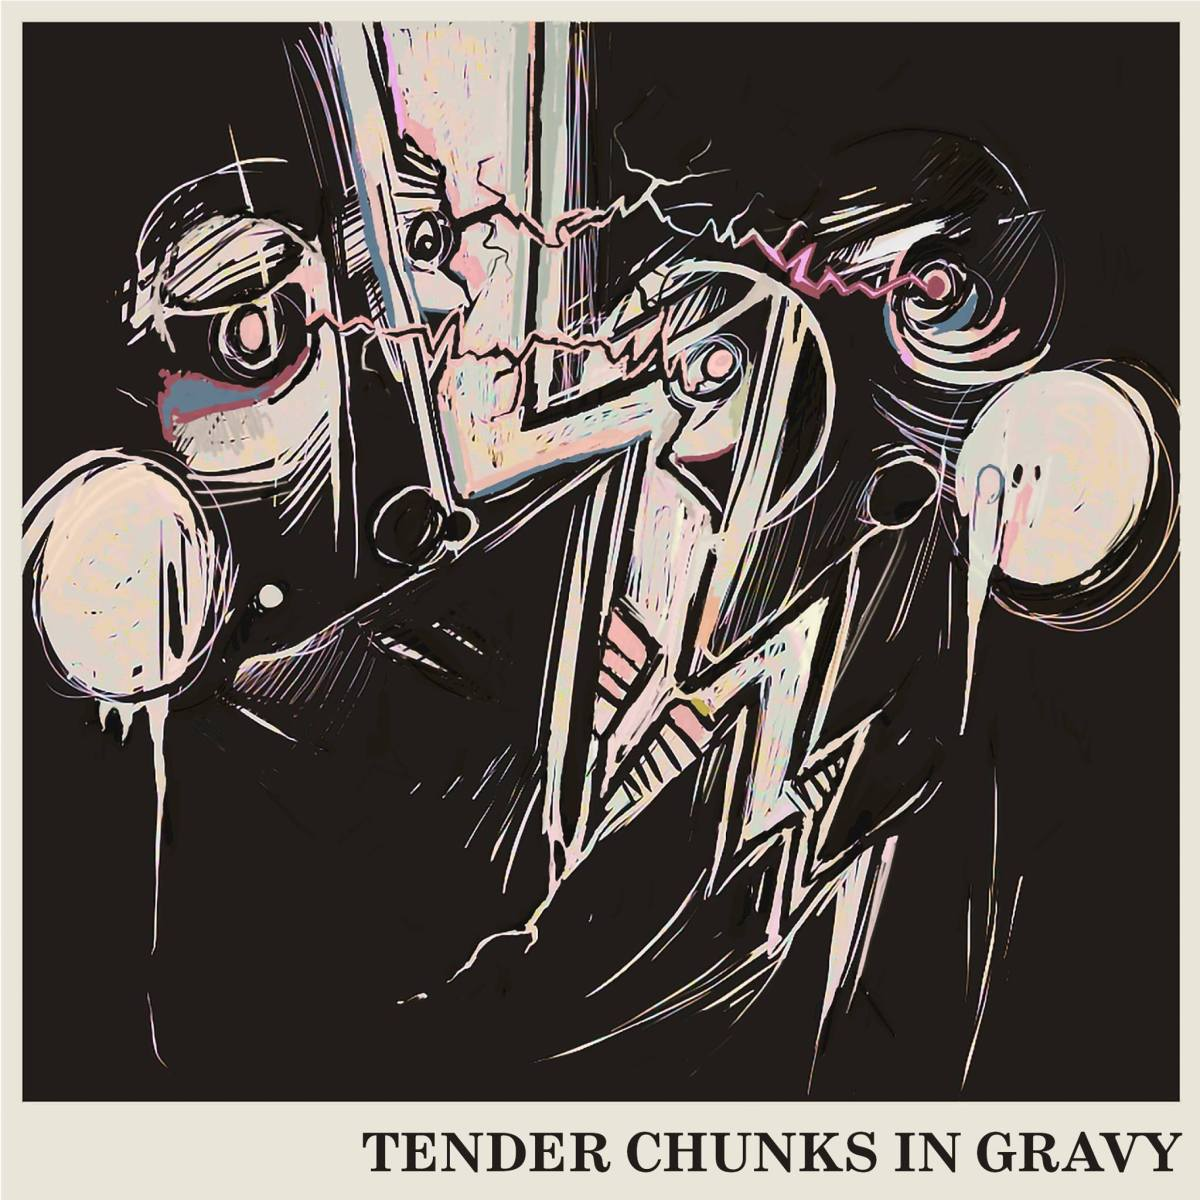 Tender Chunks in Gravy Self-Titled 7-inch